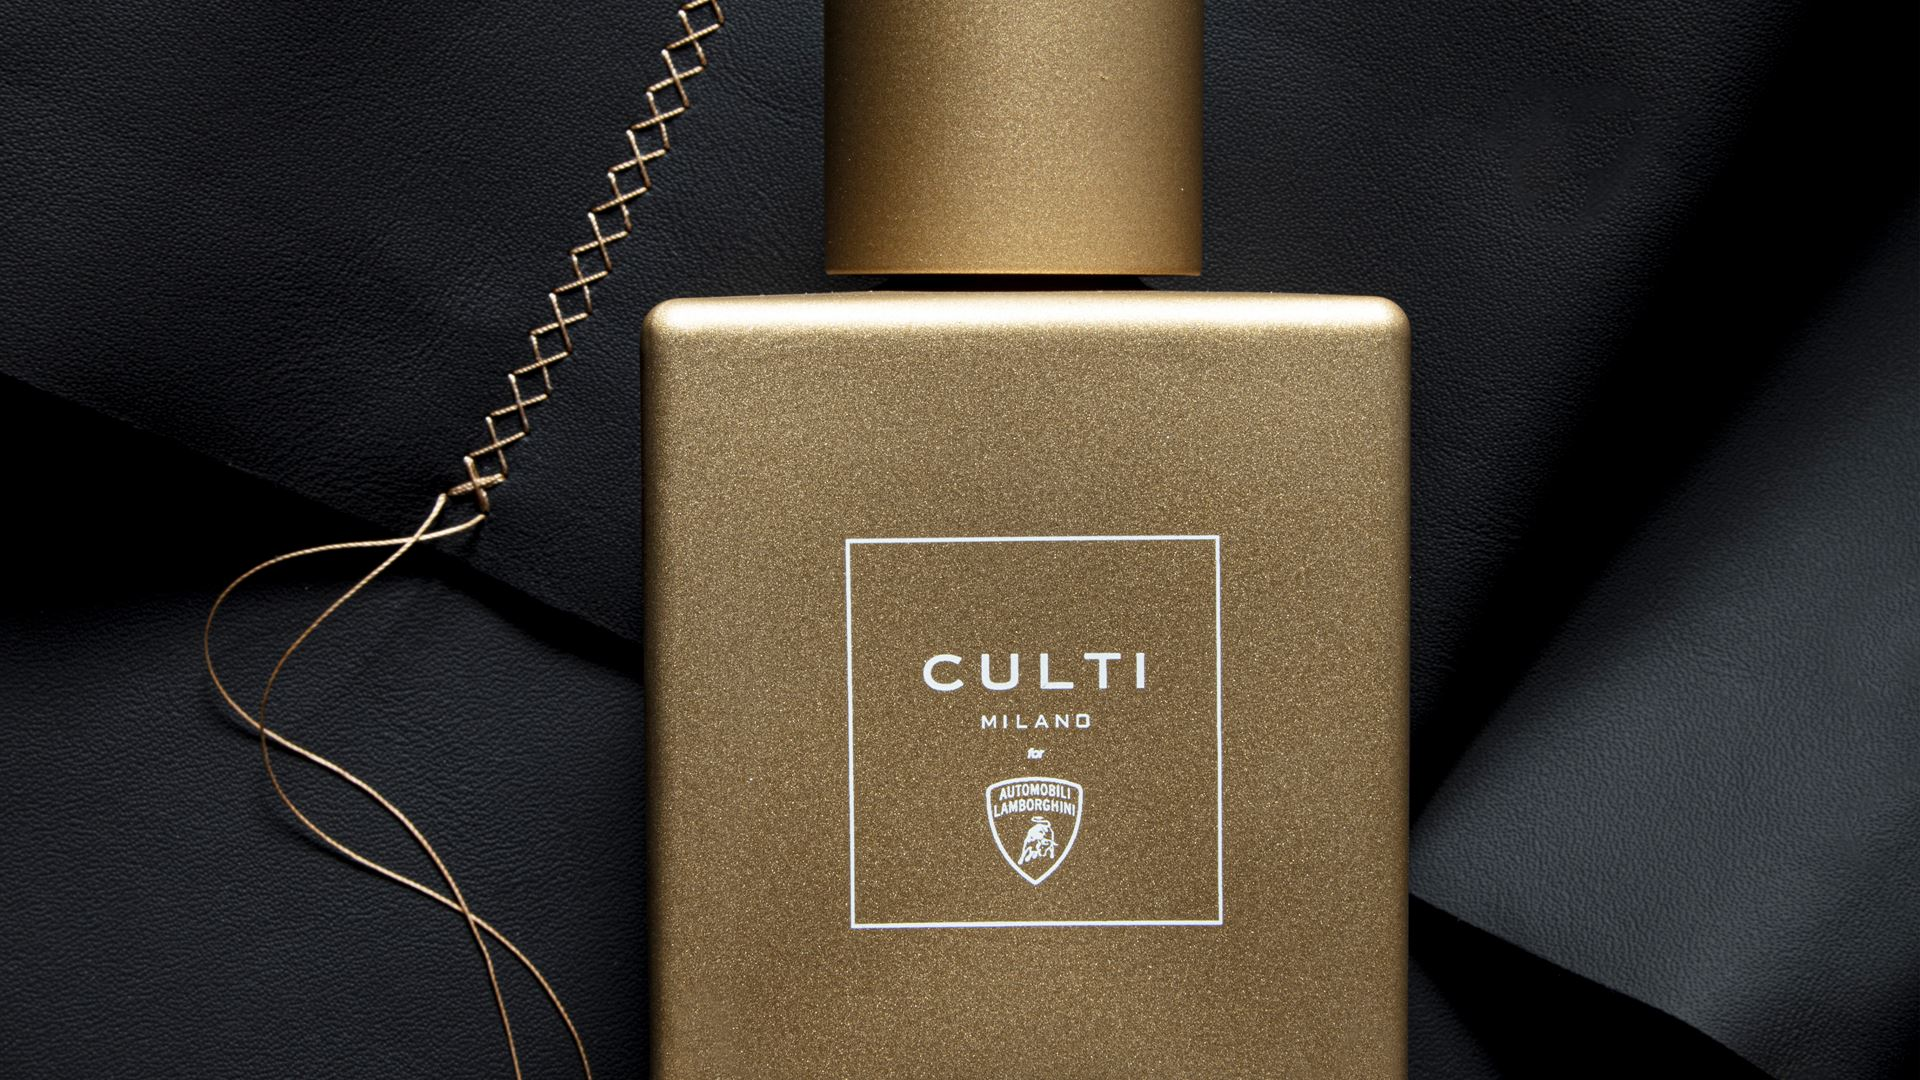 The first olfactory Automobili Lamborghini branding project signed by Culti Milano - Image 3